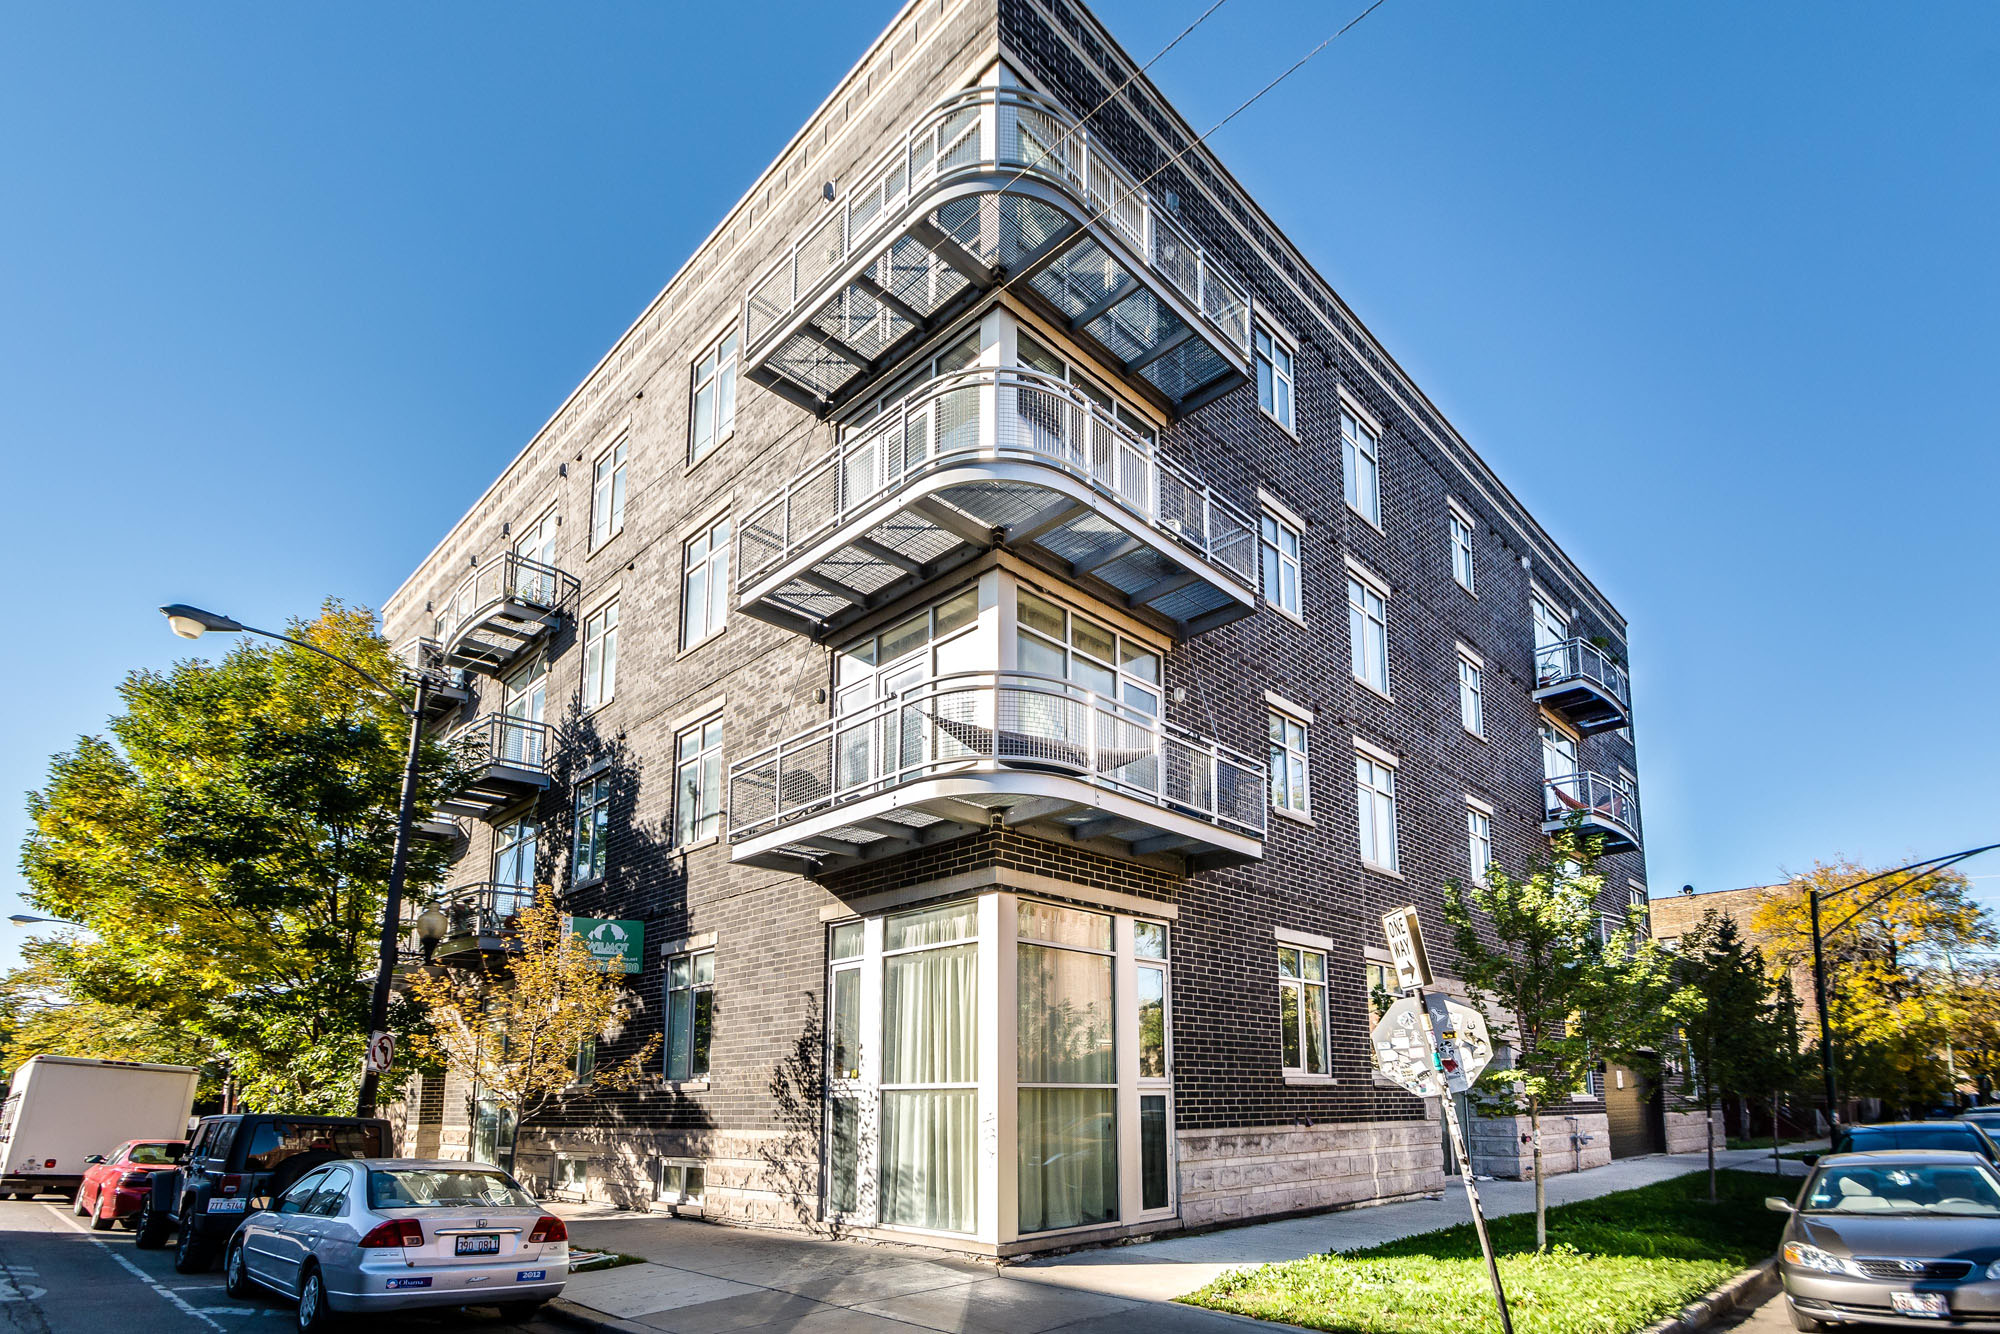 2024 N. California Ave-1